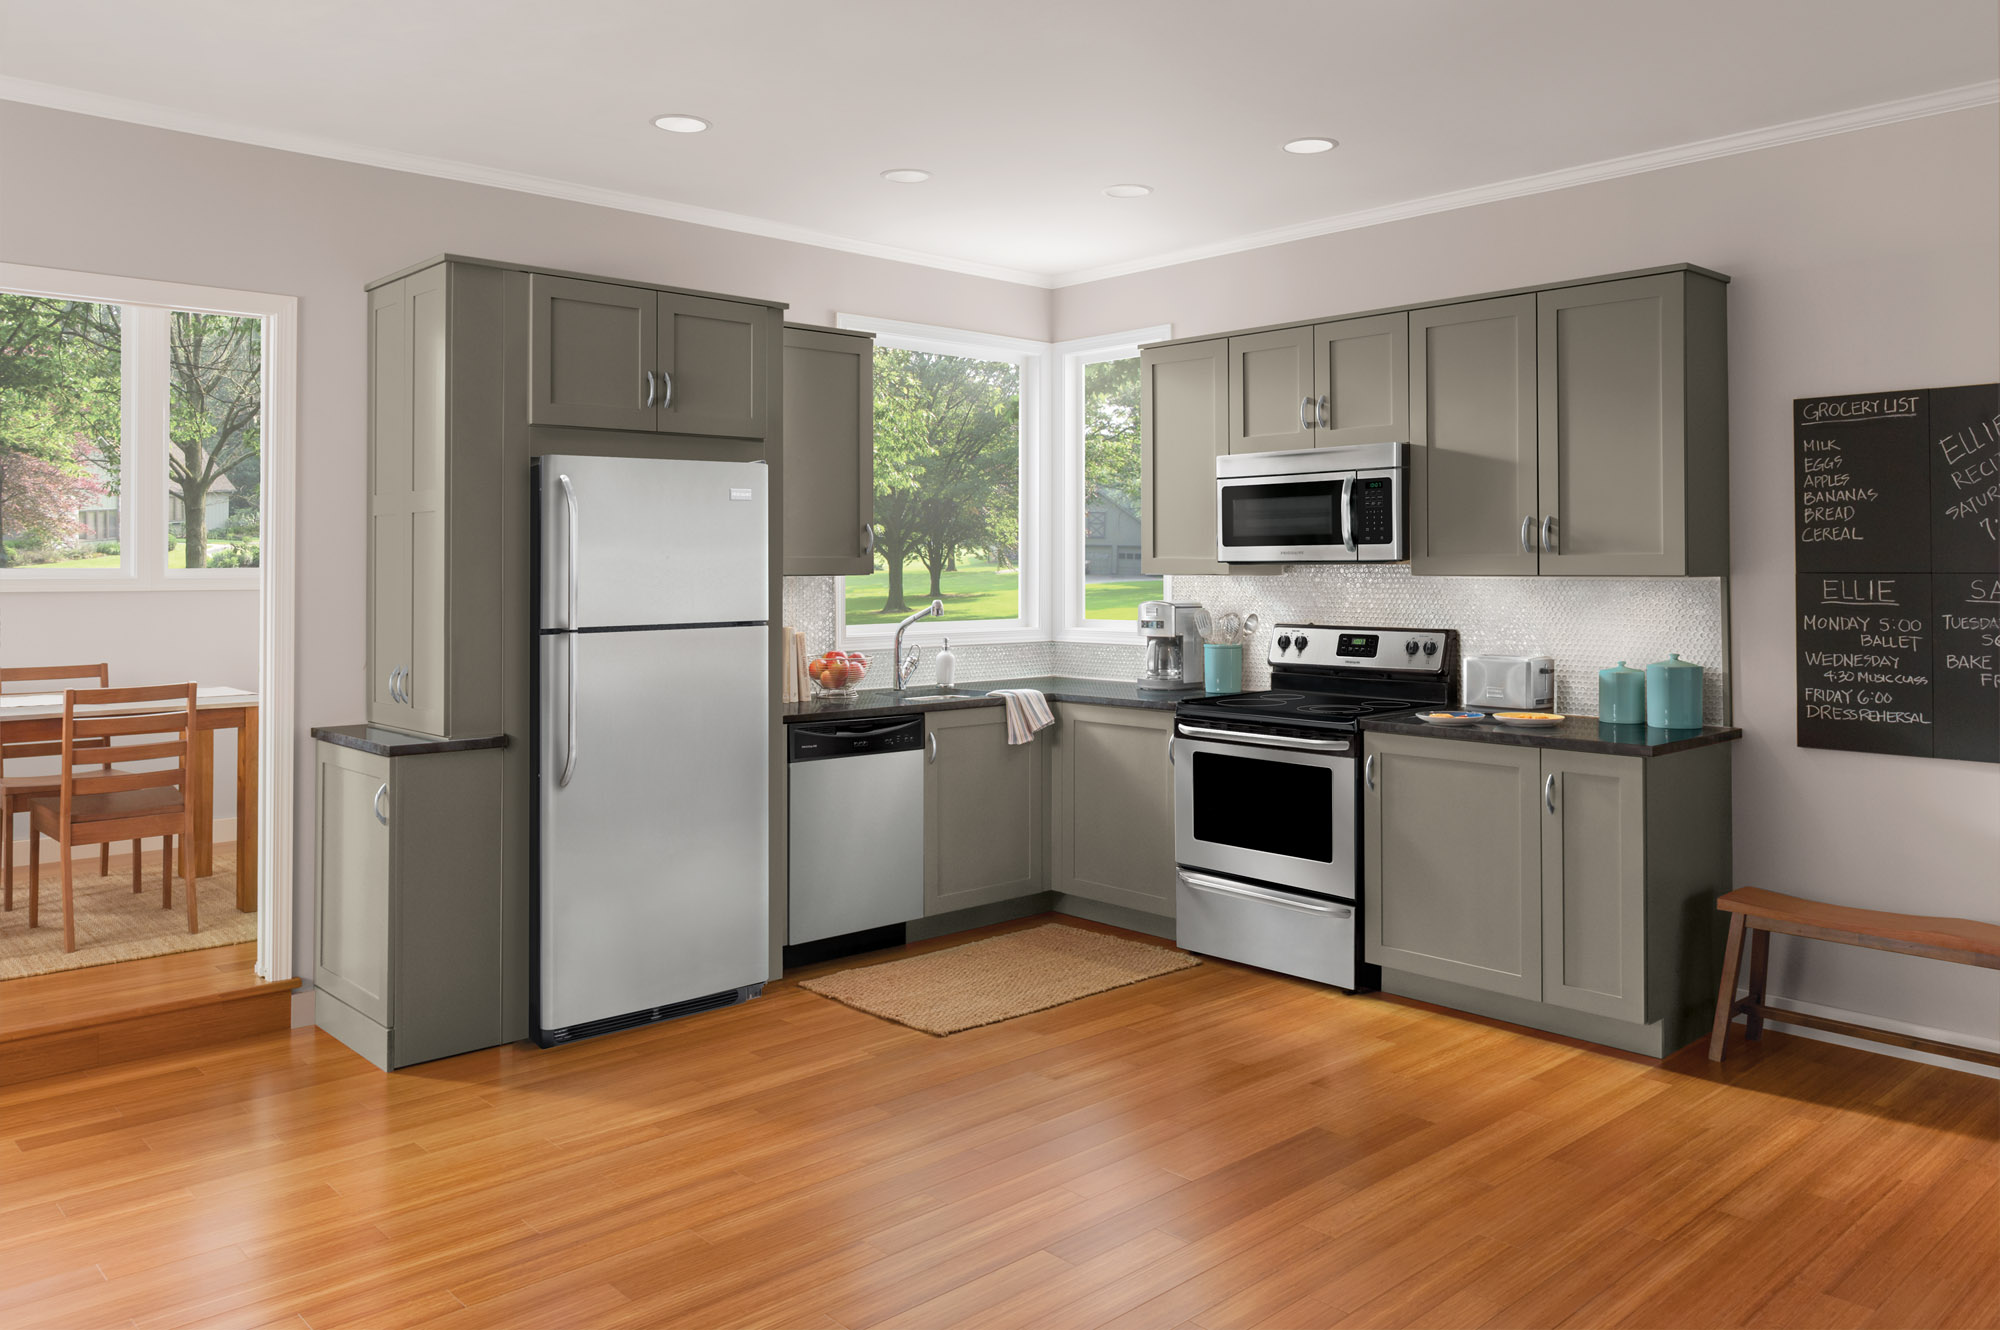 Appliance Package Deals Nowappliance Com